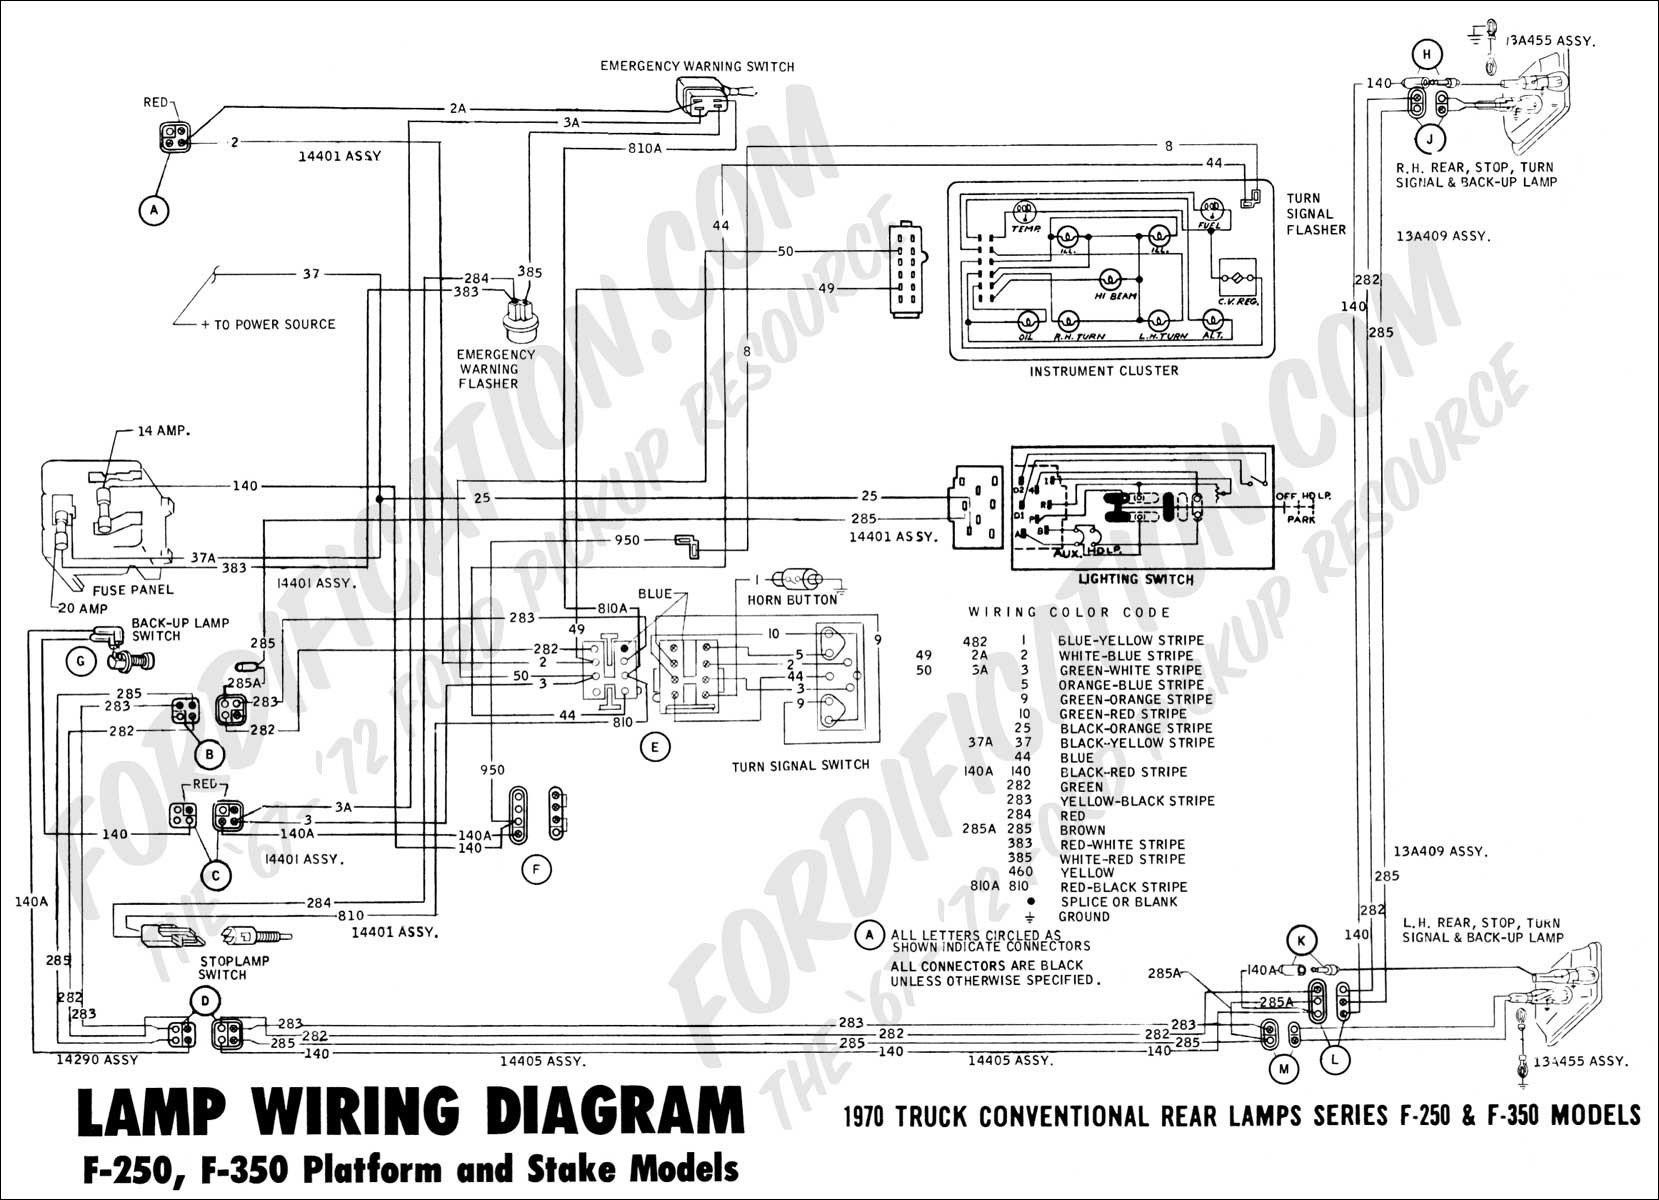 2000 ford F350 Tail Light Wiring Diagram Brake Light Diagram New 2000 ford F350 Tail Light Wiring Diagram Of 2000 ford F350 Tail Light Wiring Diagram